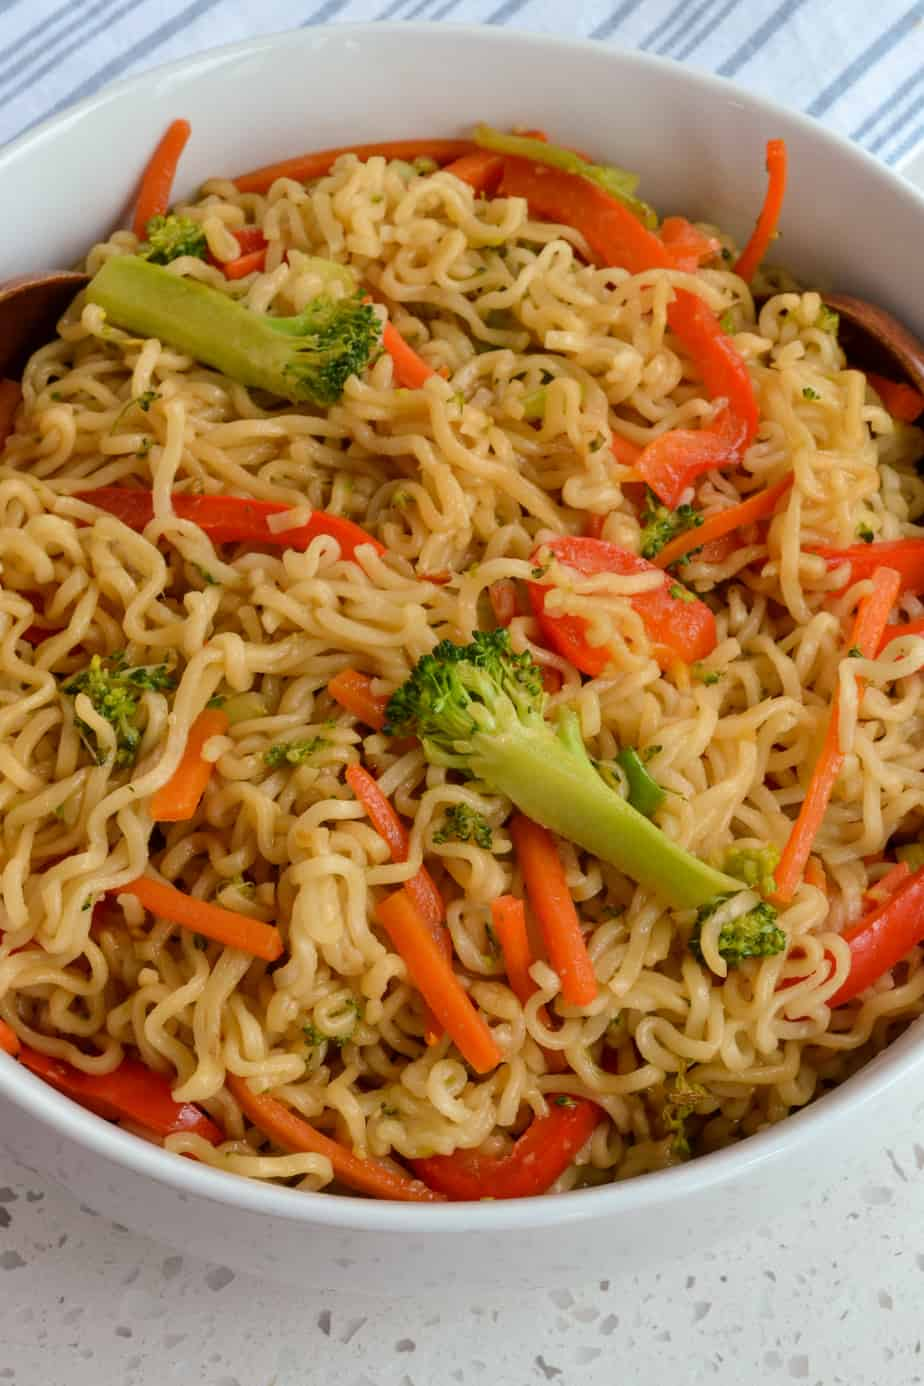 Noodle stir fry recipe with broccoli, red bell peppers, and carrots with an Asian sauce.